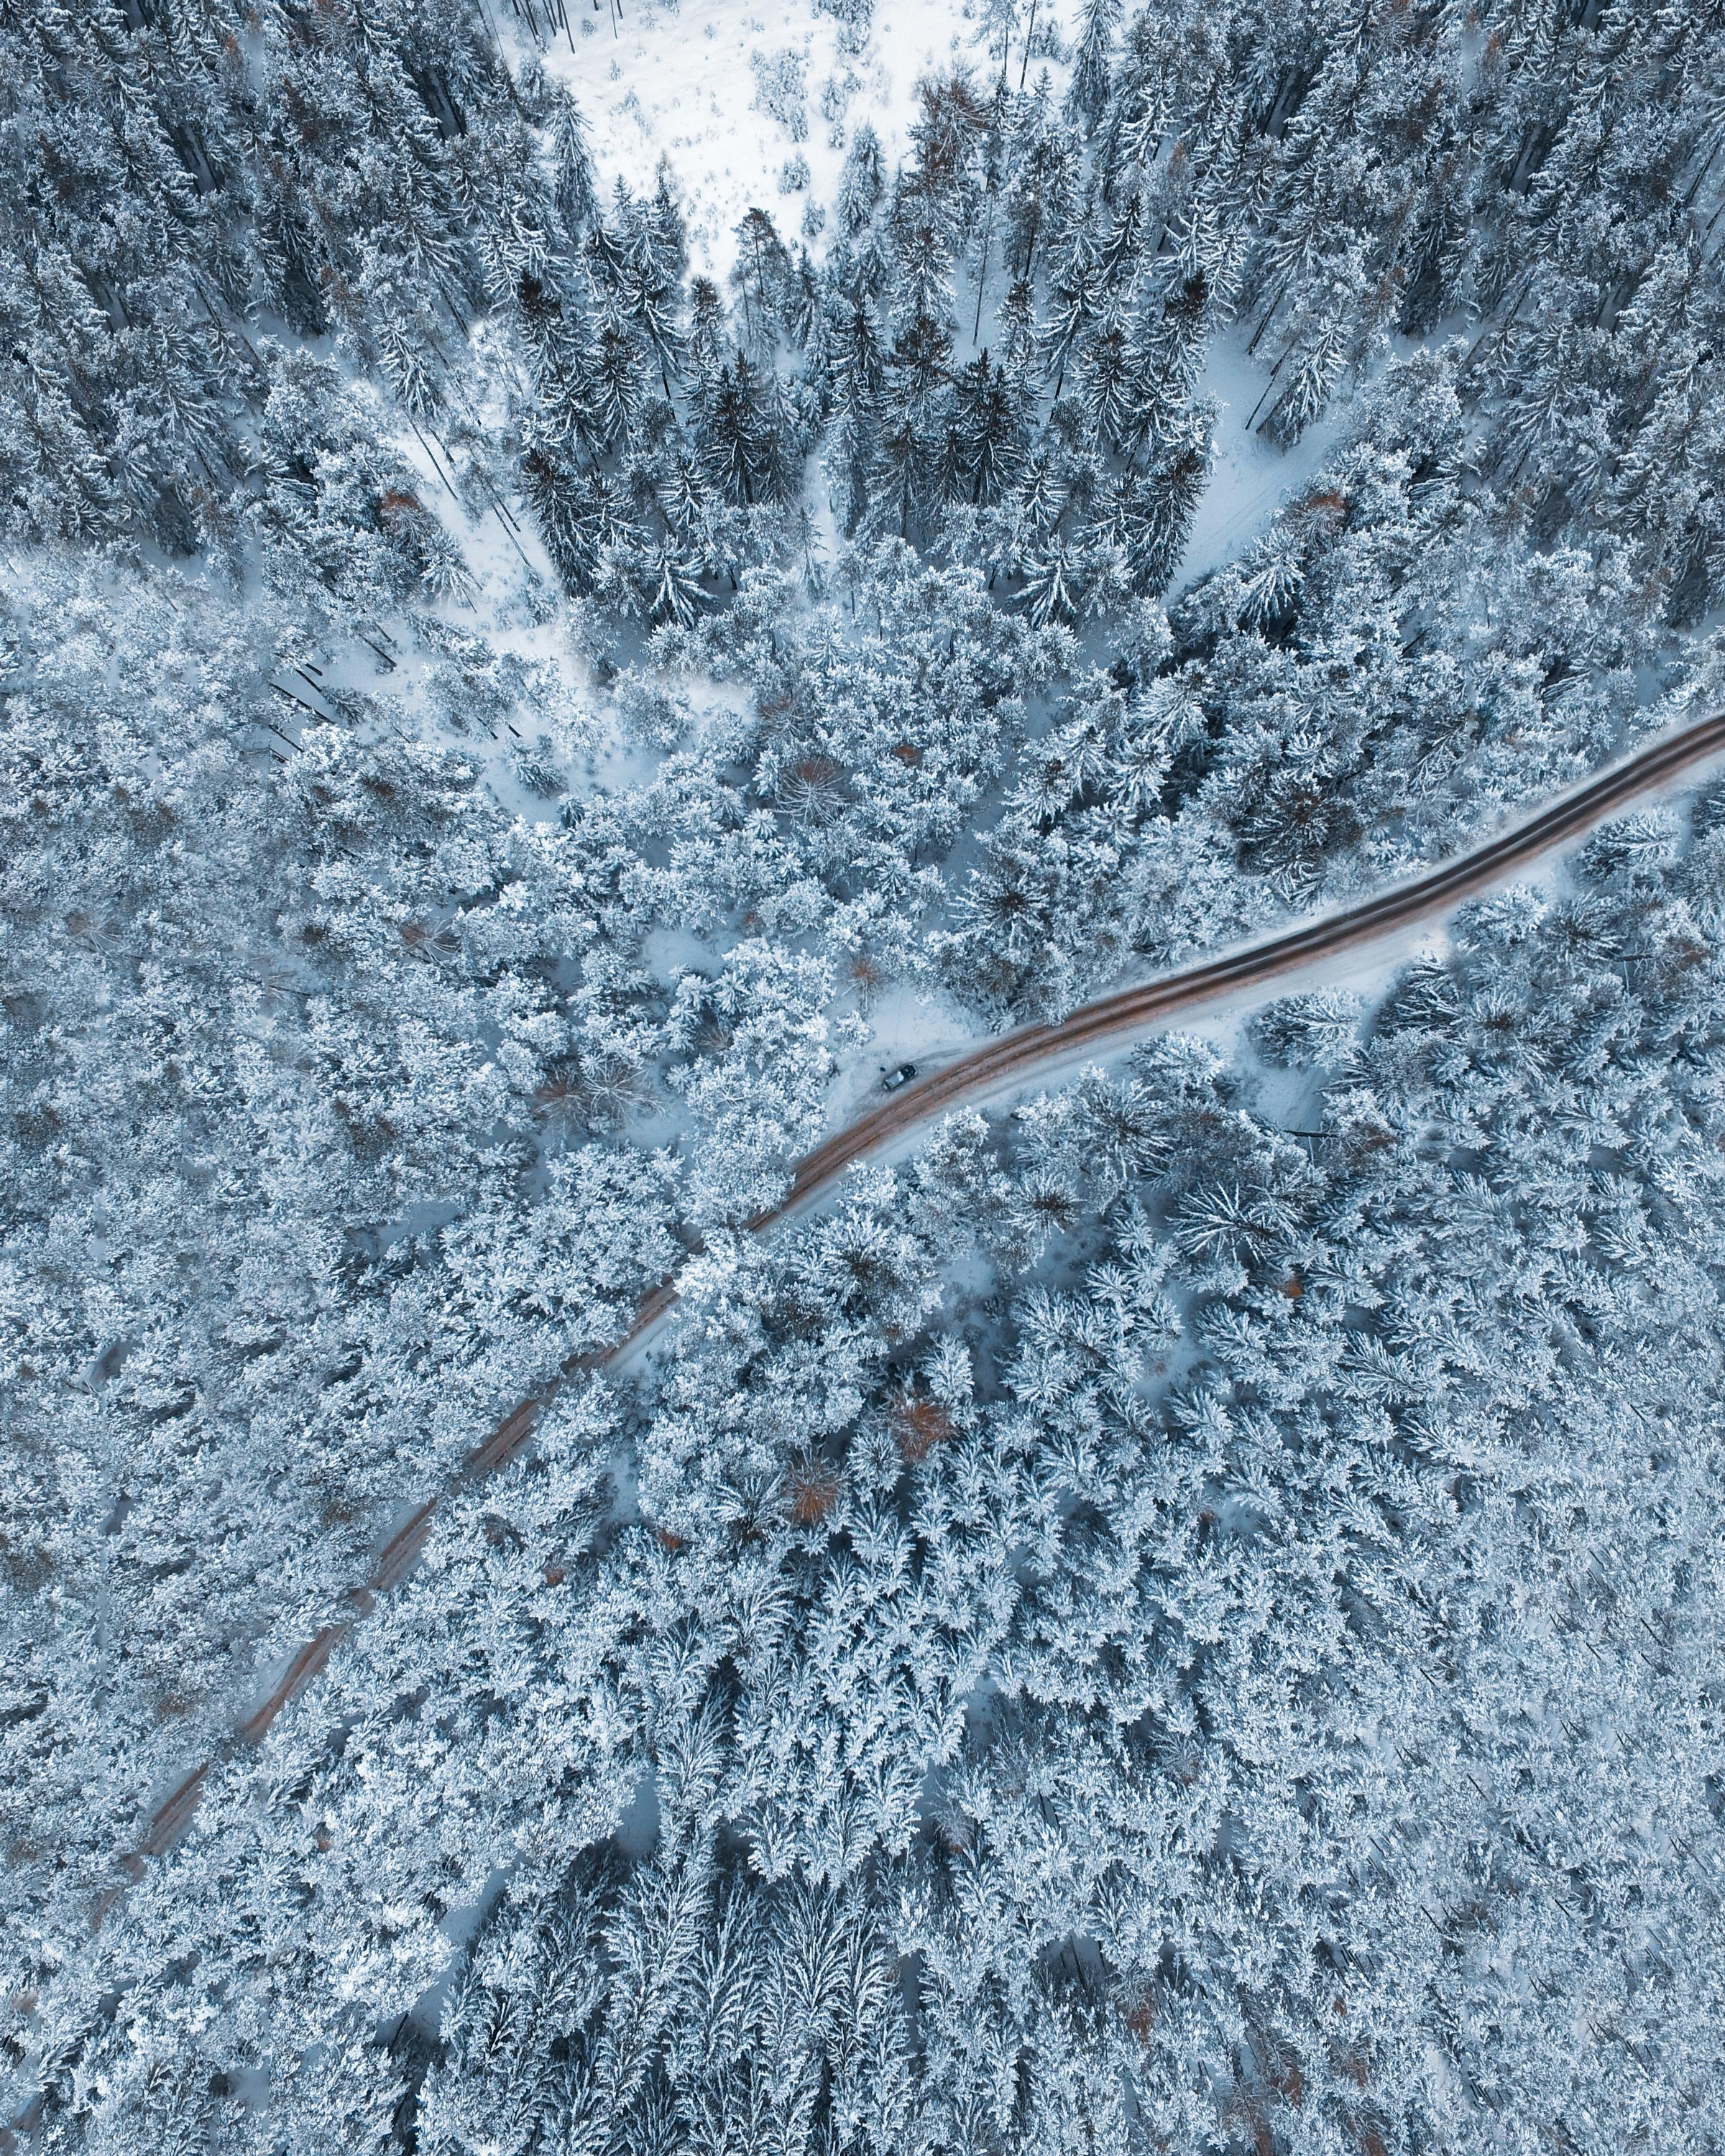 bird's-eye view photo of empty way surrounded by pine trees